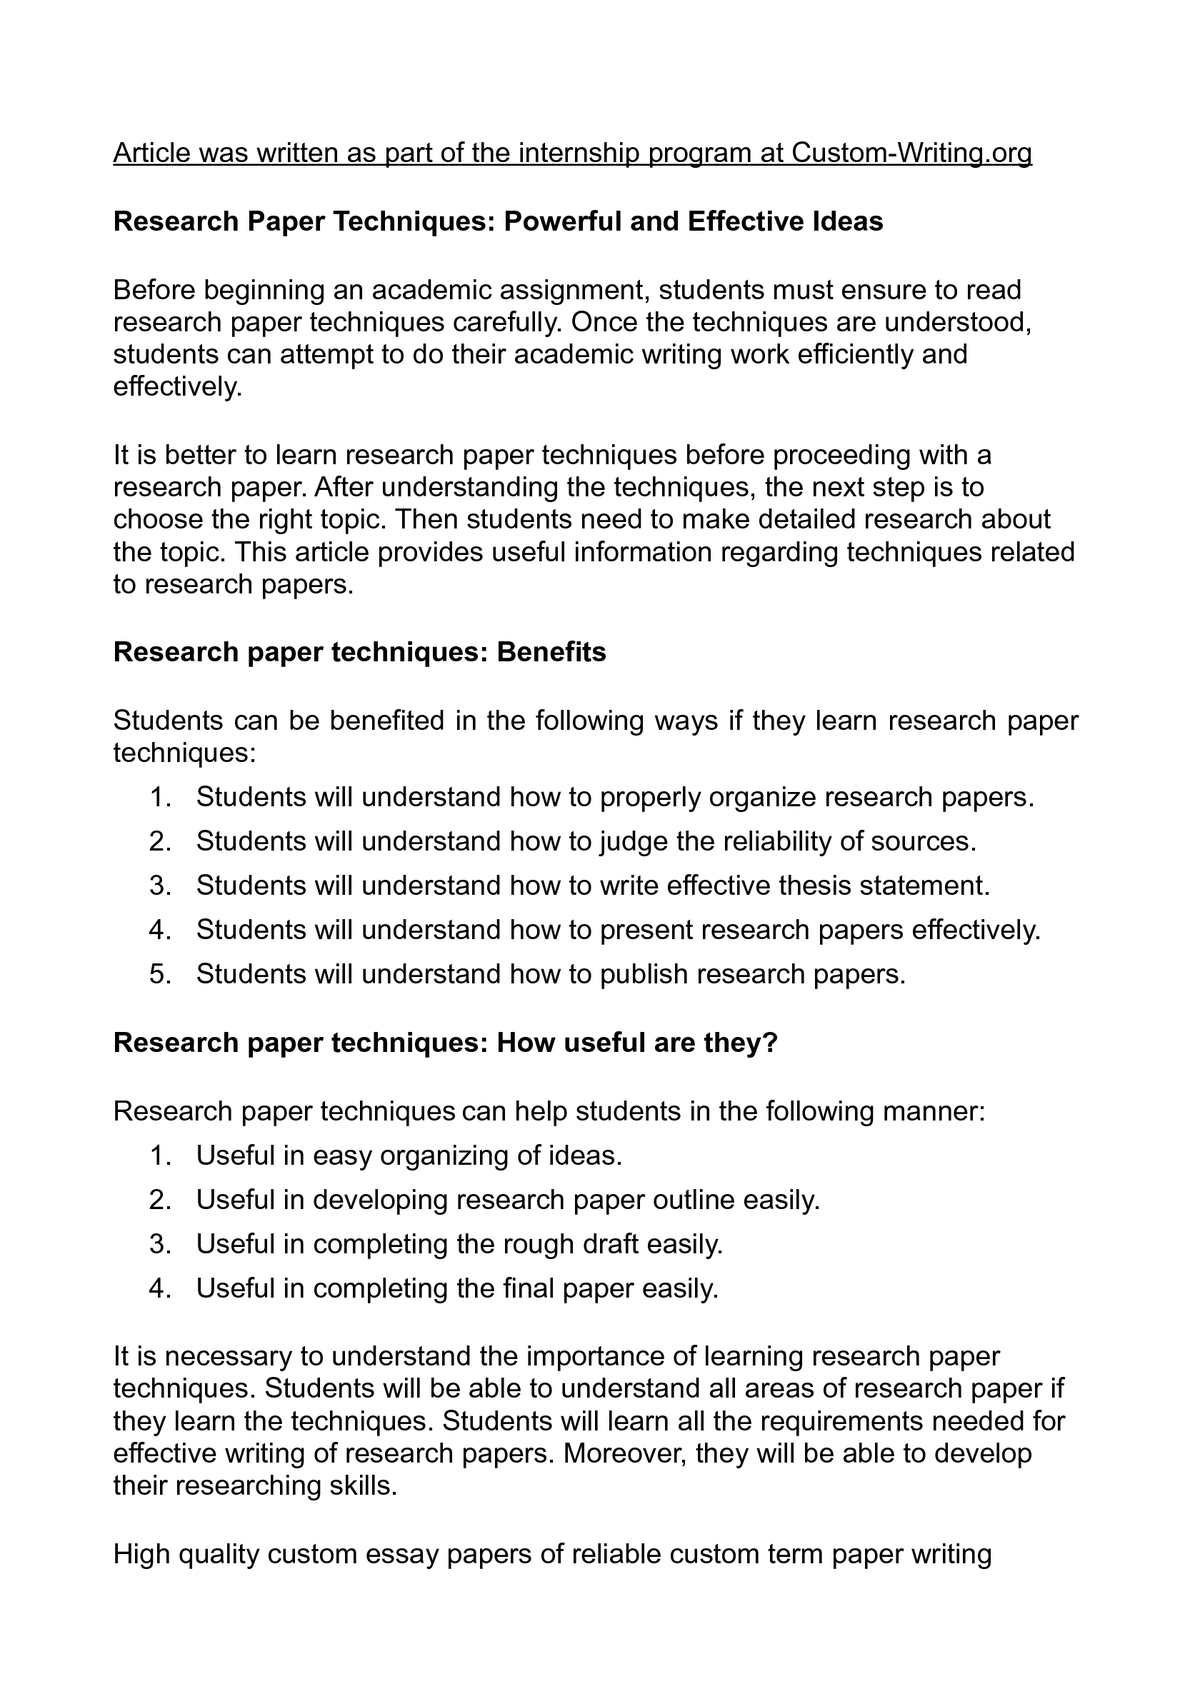 003 Ideas For Researchs P1 Archaicawful Research Papers In Computer Science Education High School Full